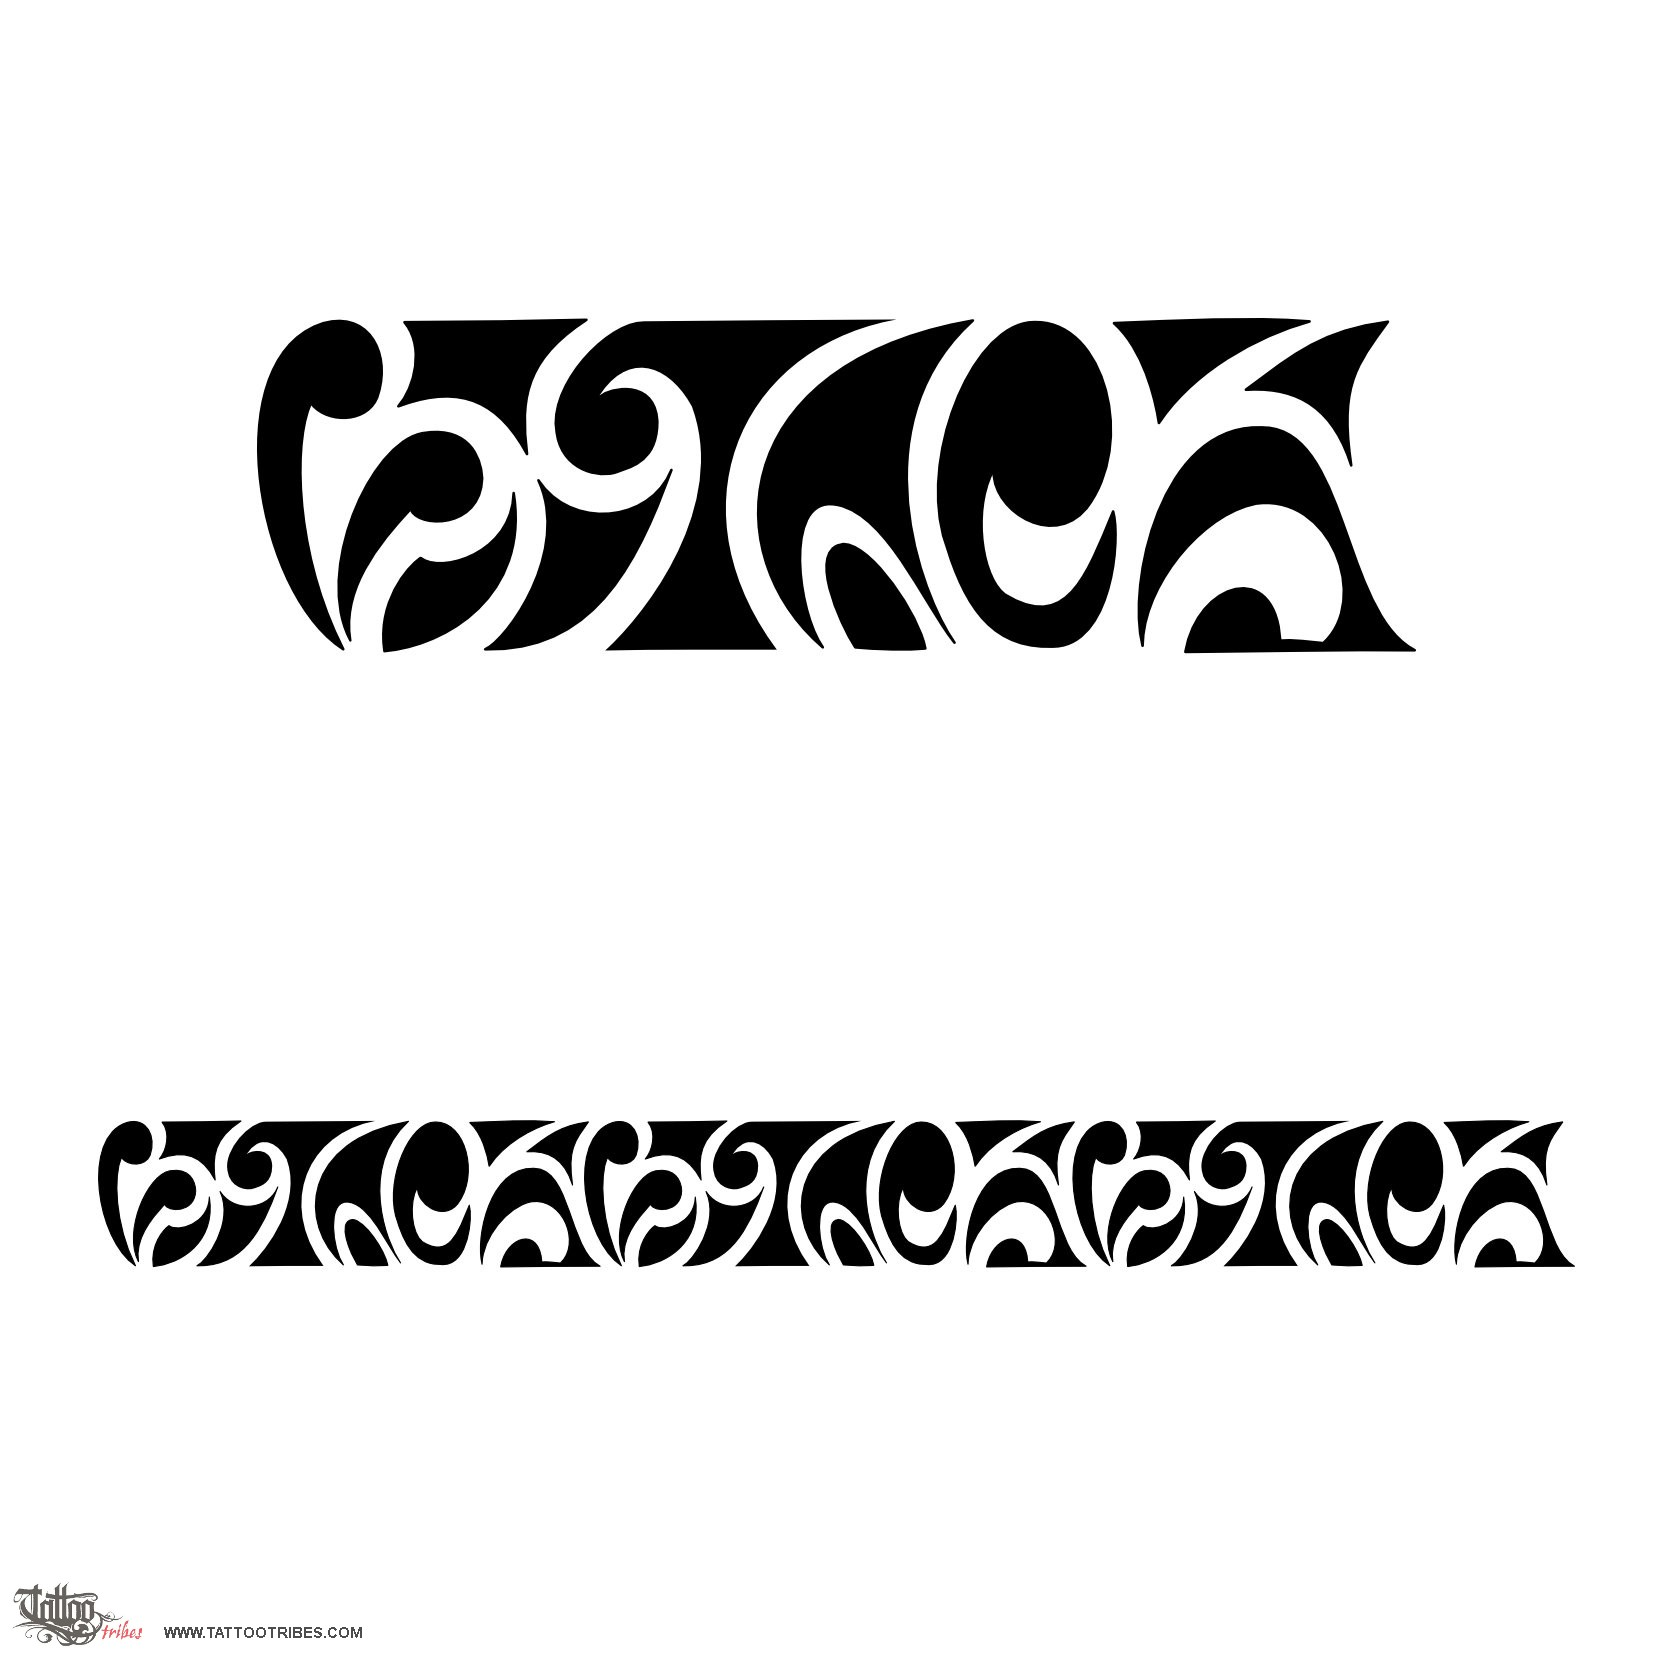 Tattoo of Maorigram VTC letters tattoo custom tattoo designs on